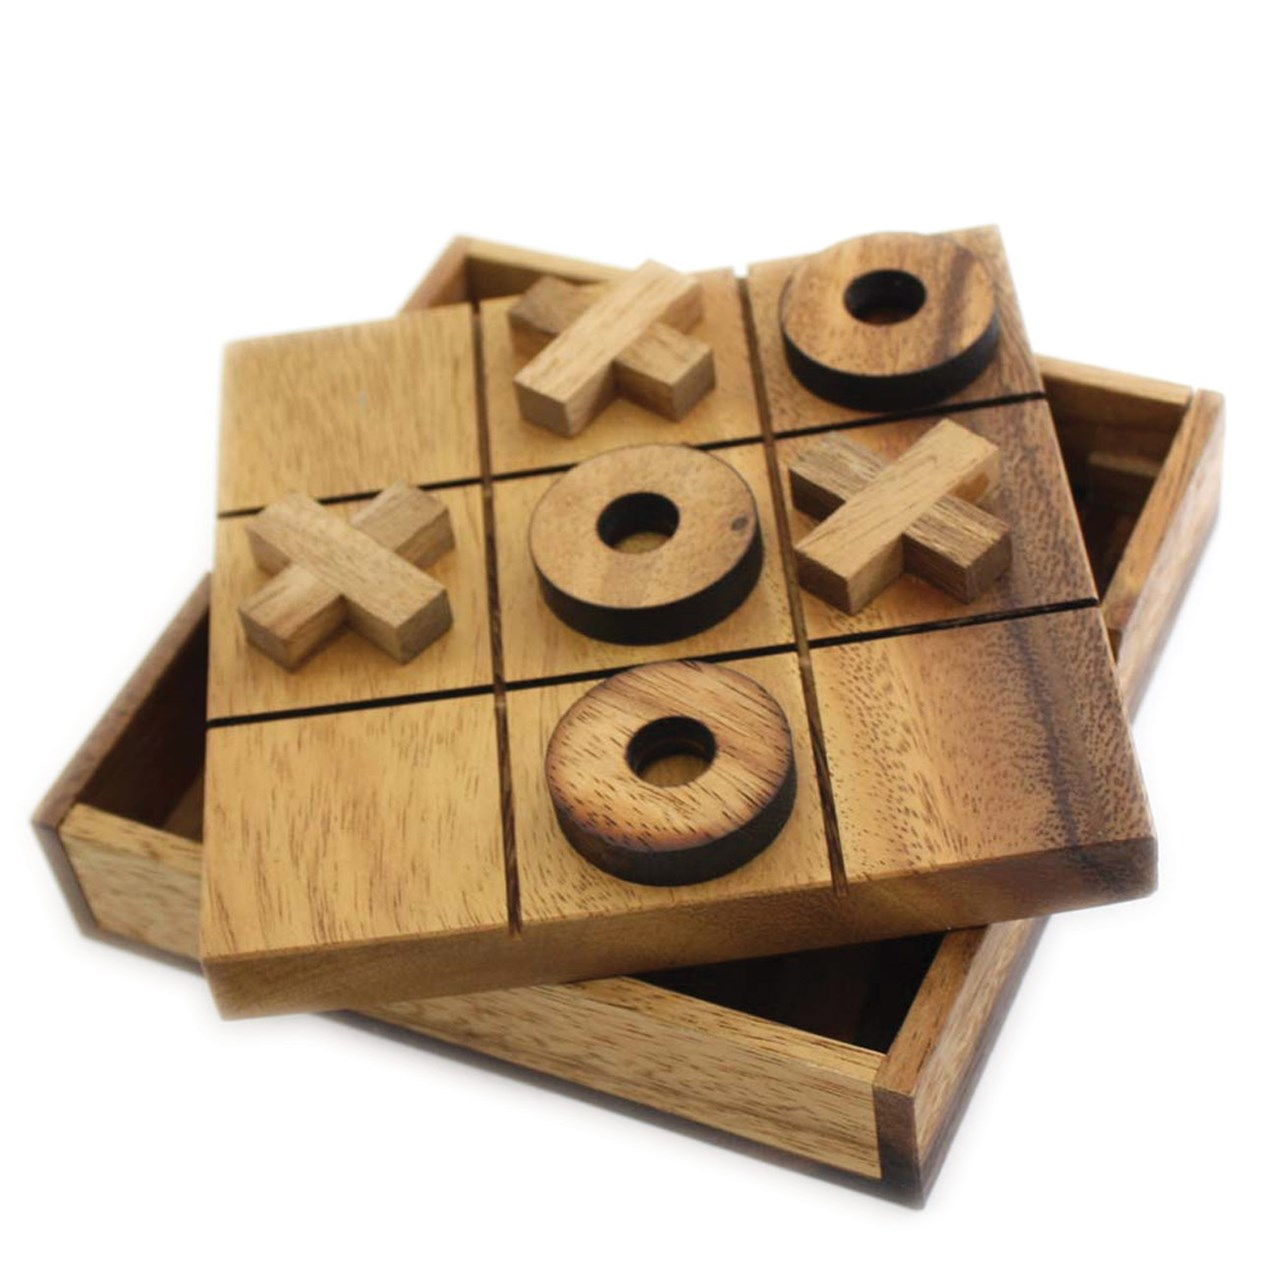 Maxiaids Tic Tac Toe Tactile Wooden Game